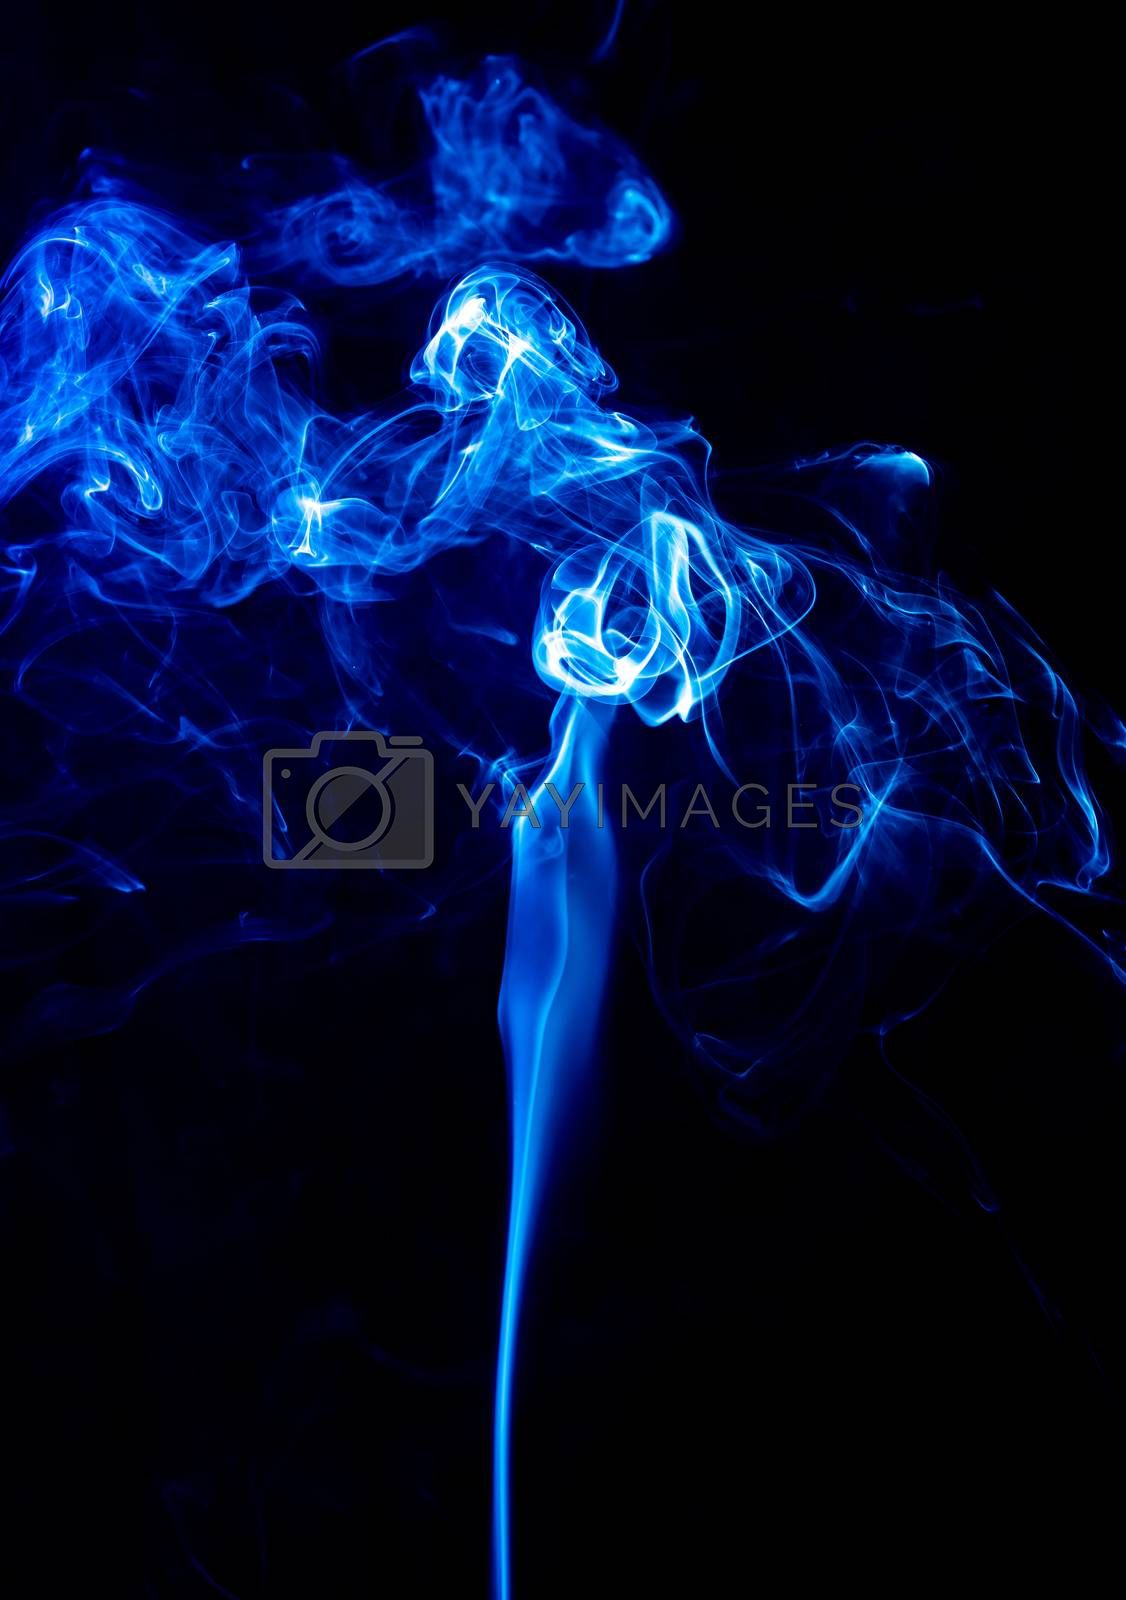 Blue abstract shaped smoke against black background. Abstract background. Selective focus